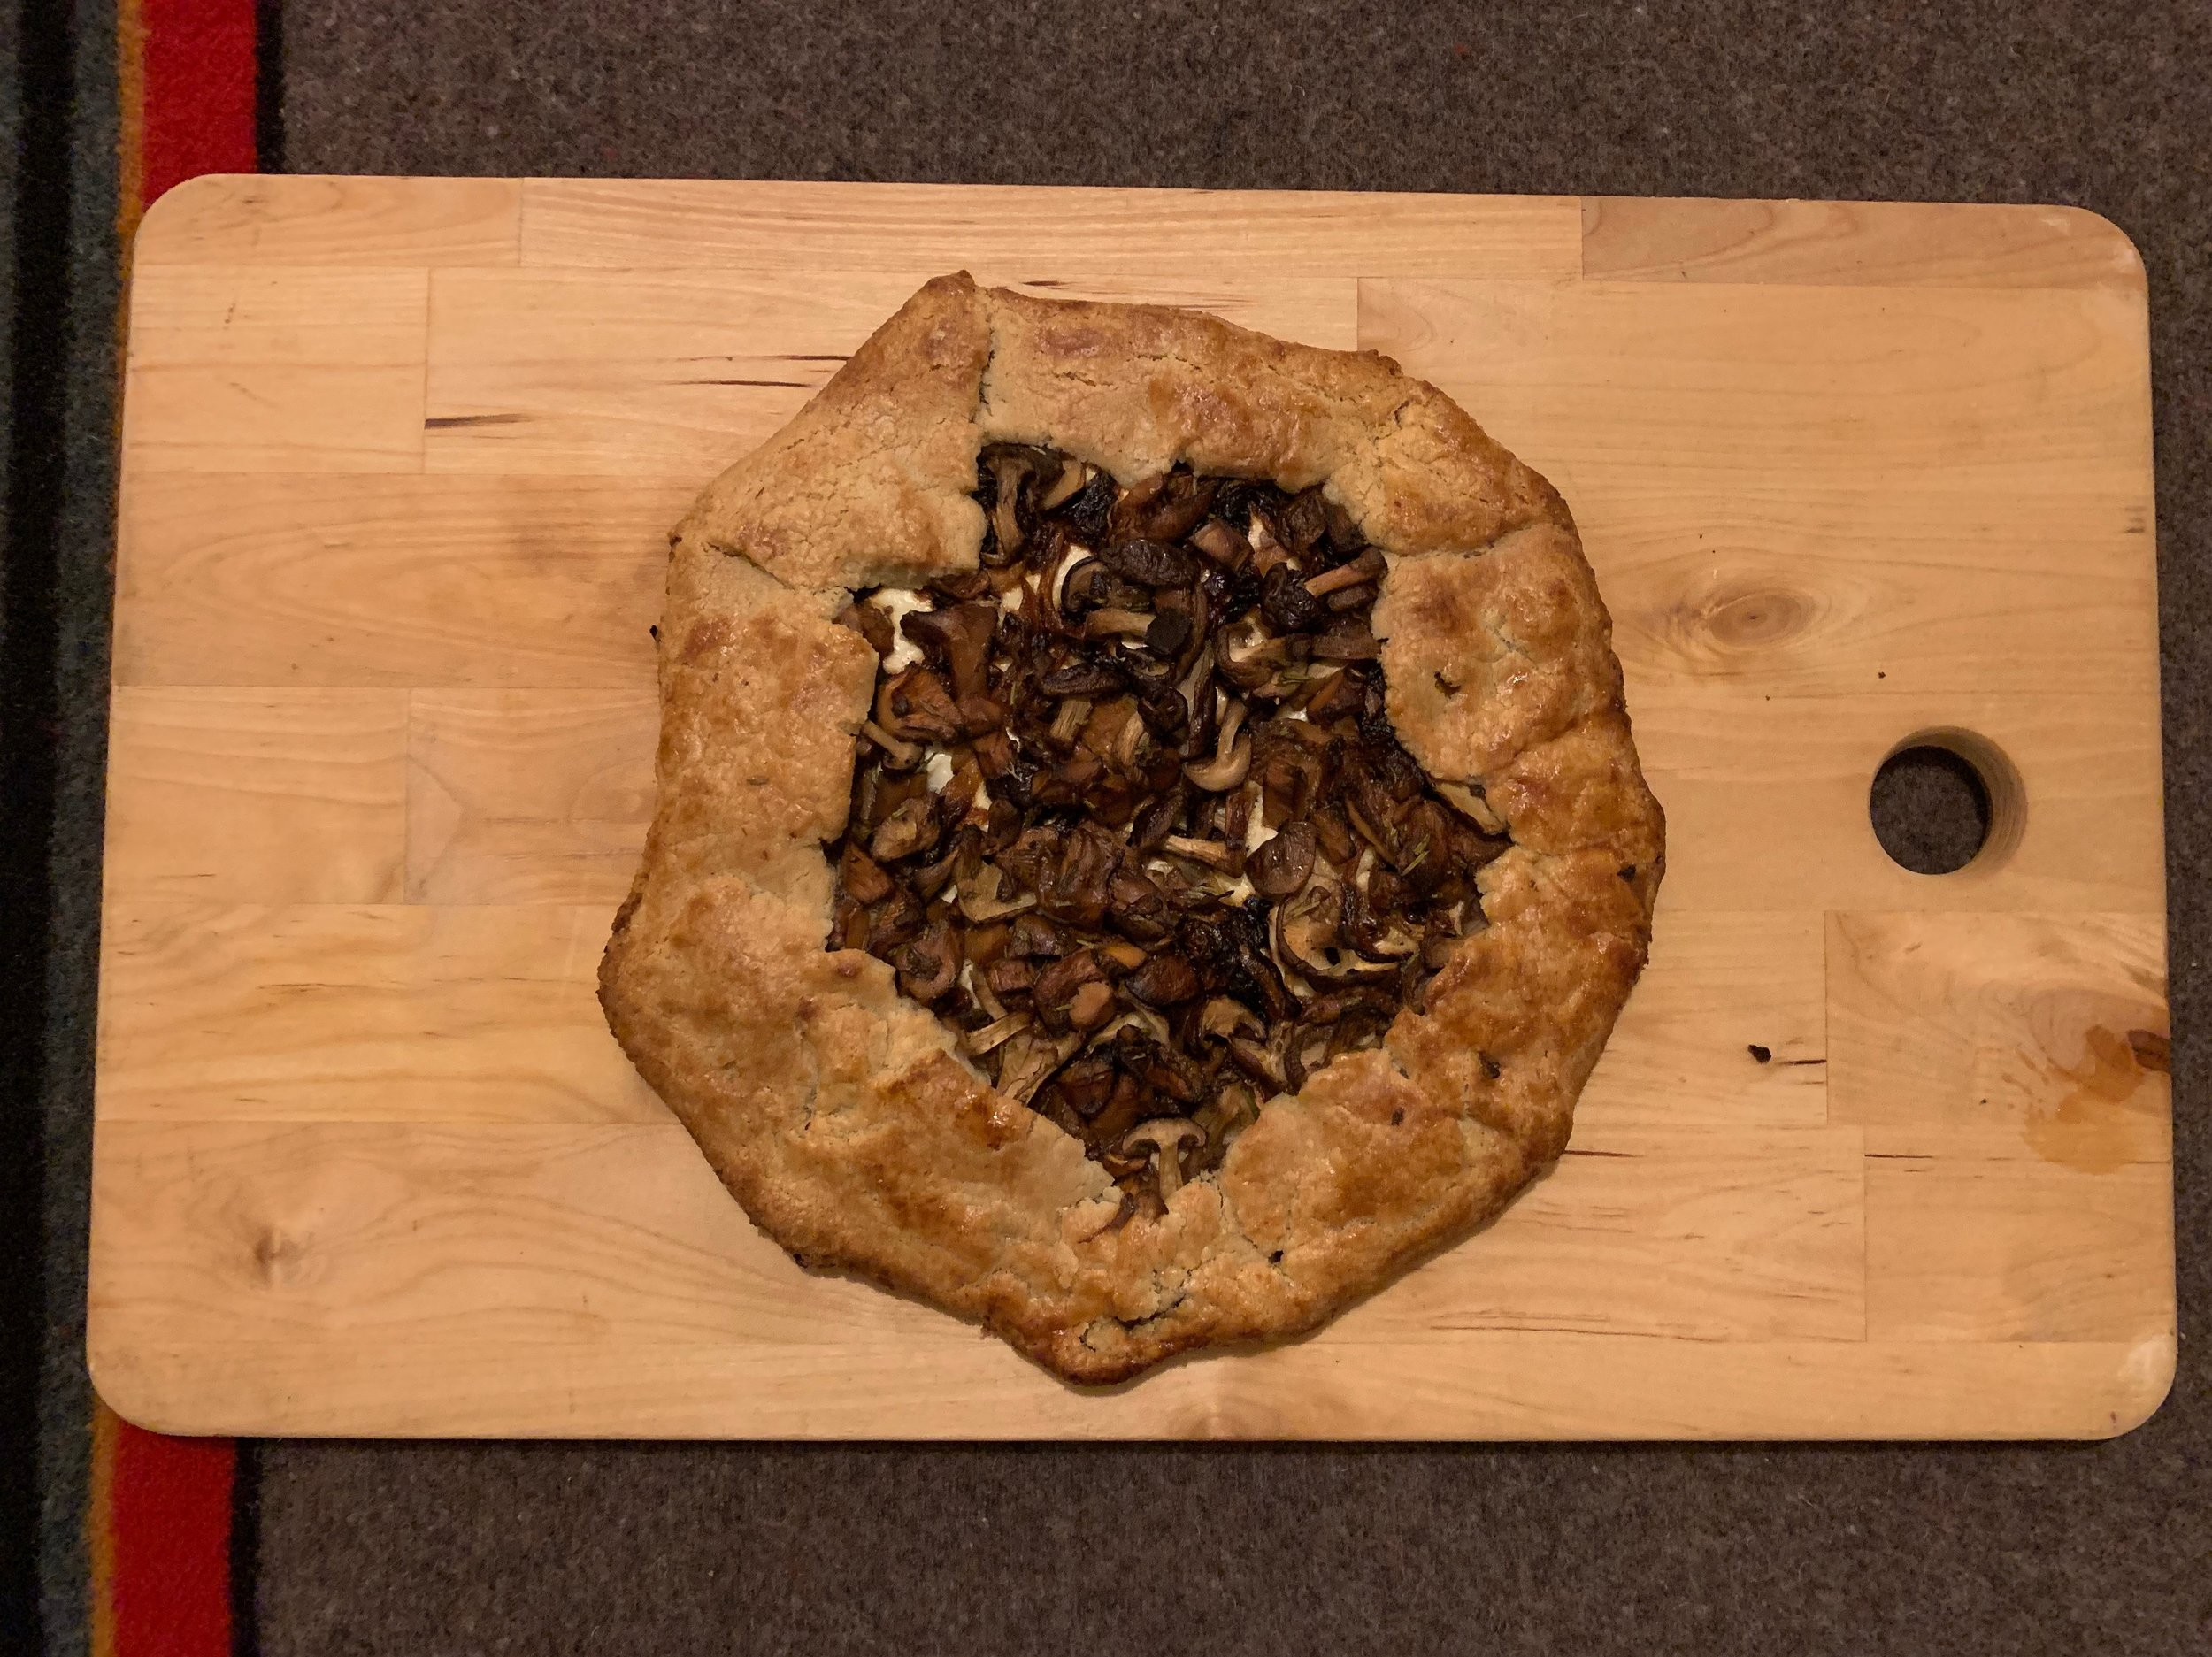 Wild Mushroom Galette - Shitake Mushroom and Caramelized Onions layered on goat cheese and buttery crust.